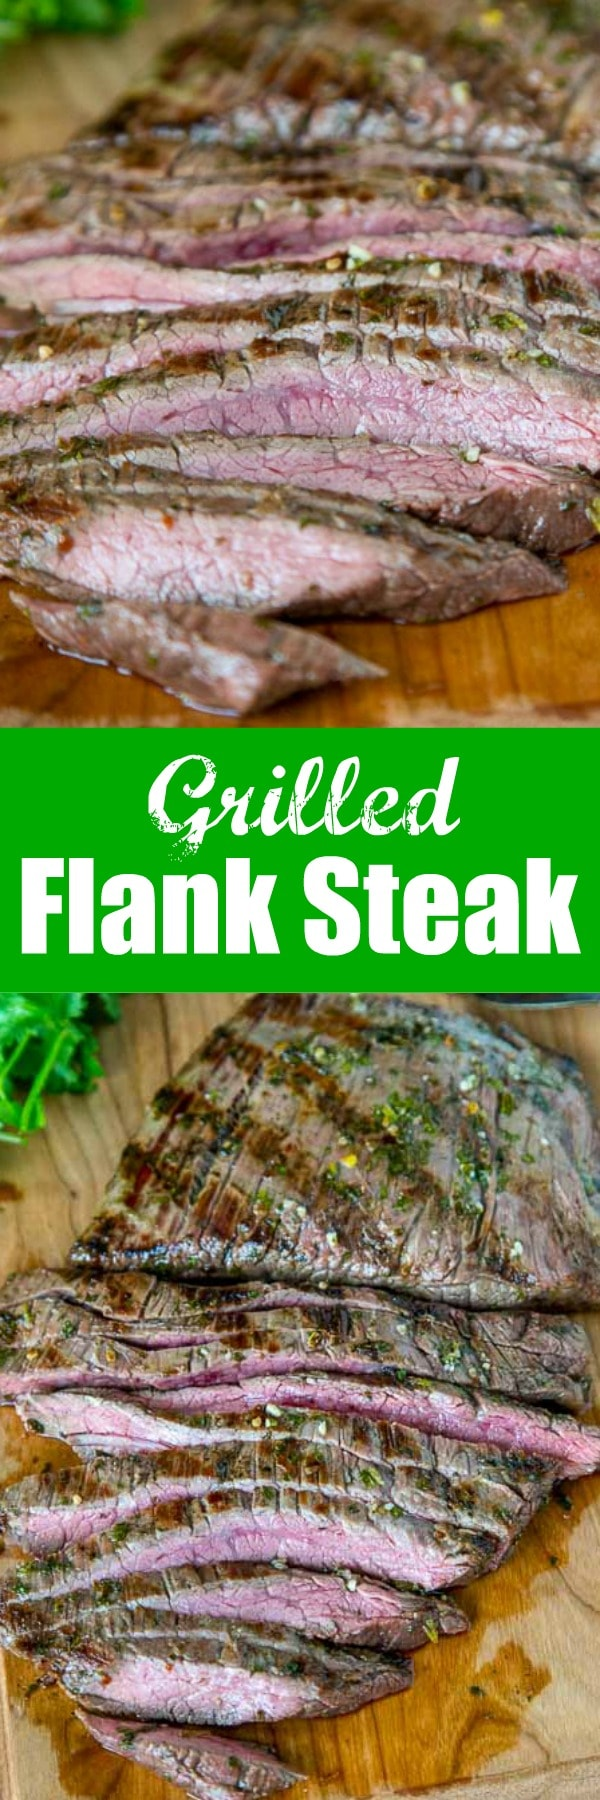 Grilled Chile Lime Flank Steak - grilled flank steak that is marinated in olive oil, lime juice, cilantro, and jalapeno. It goes on the grill for just minutes for a super fast meal the whole family will love.